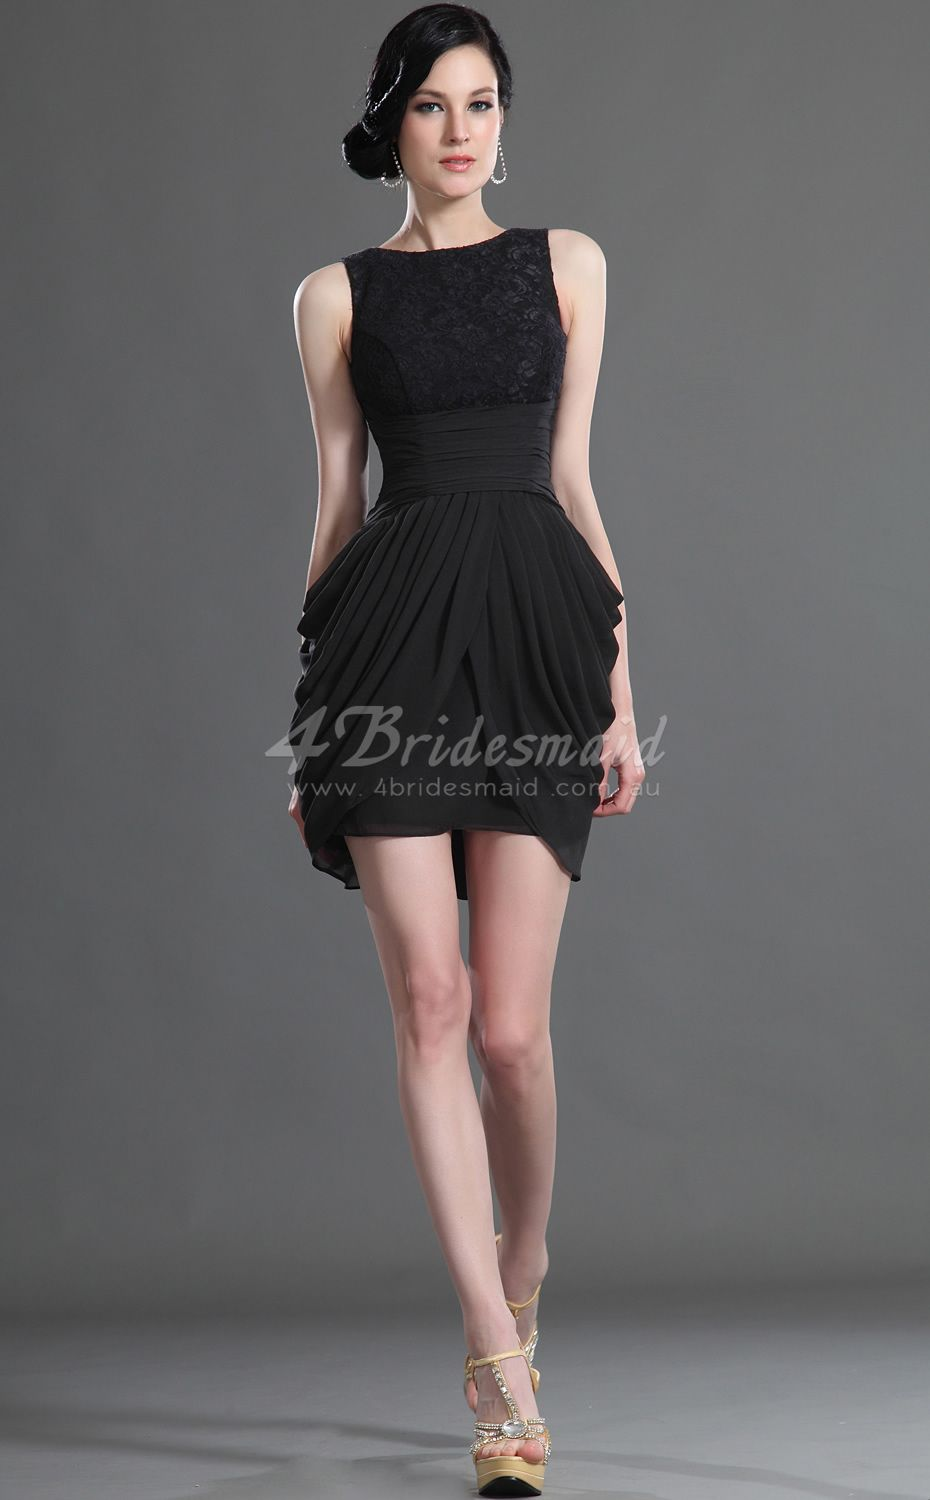 Sheathcolumn jewel neck shortmini black lace bridesmaid dresses